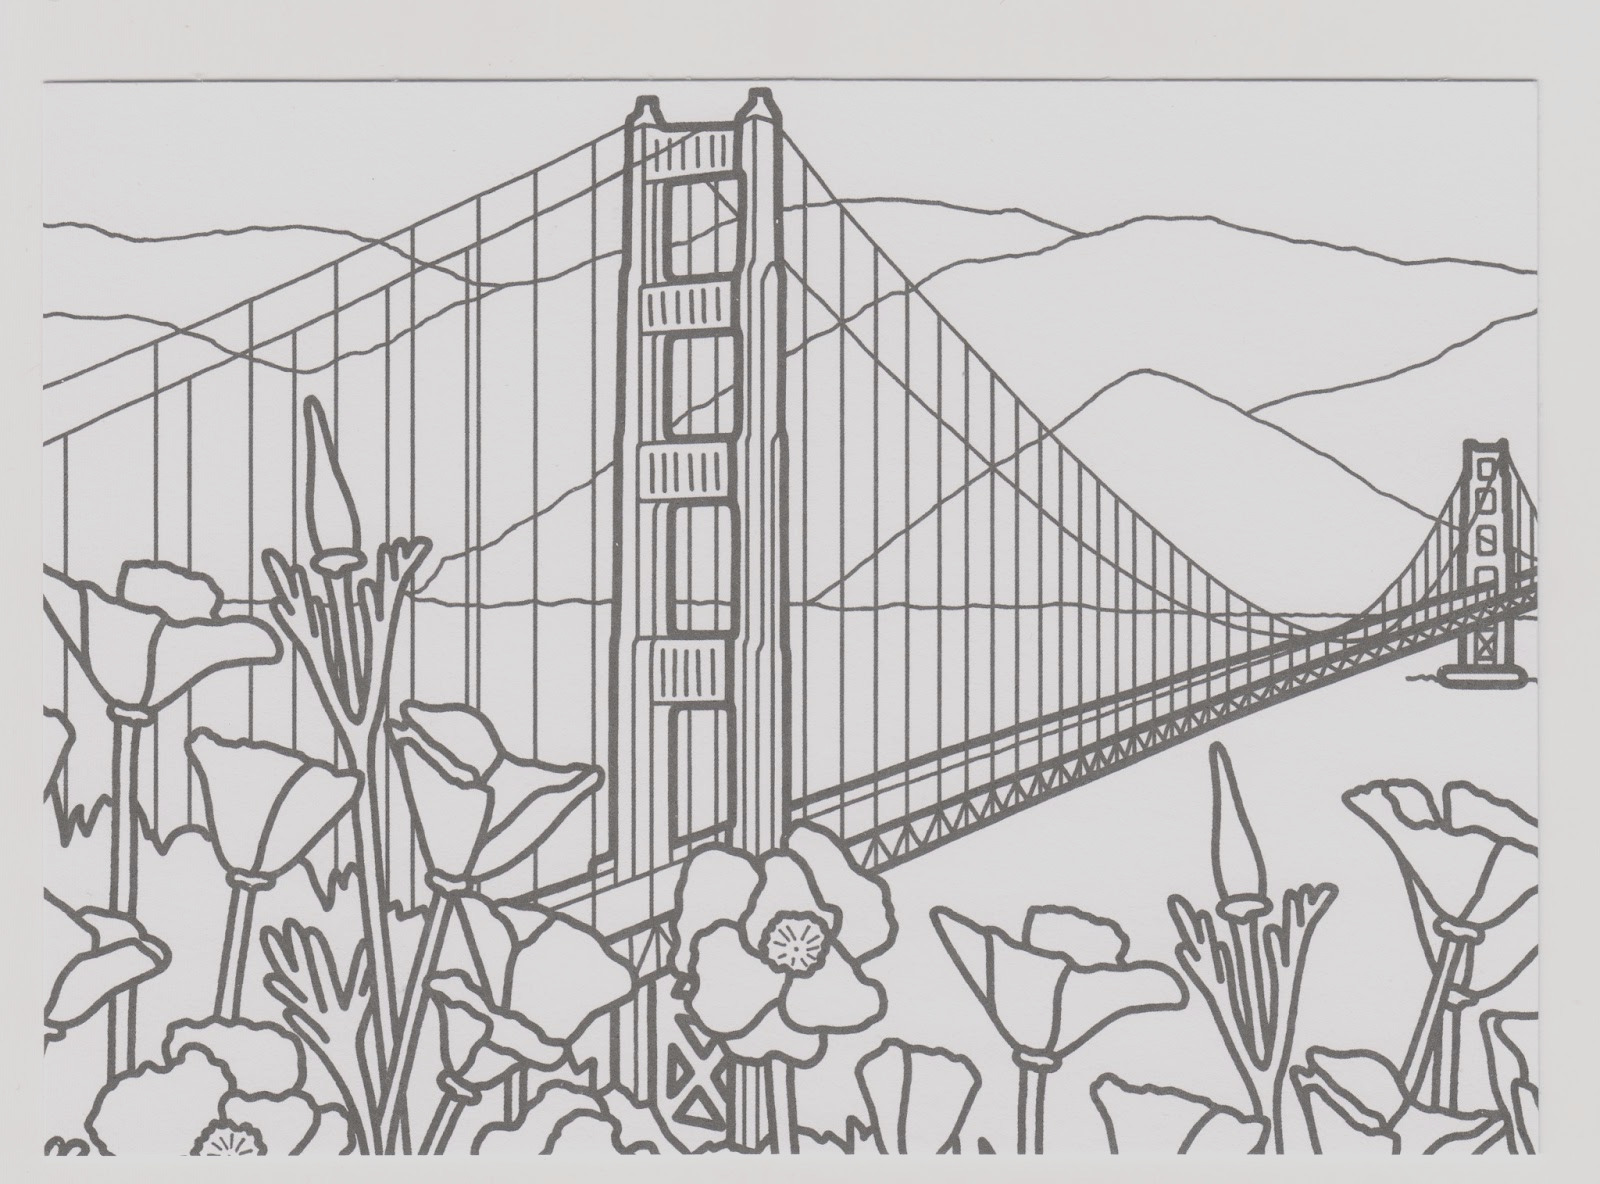 76th anniversary of golden gate bridge